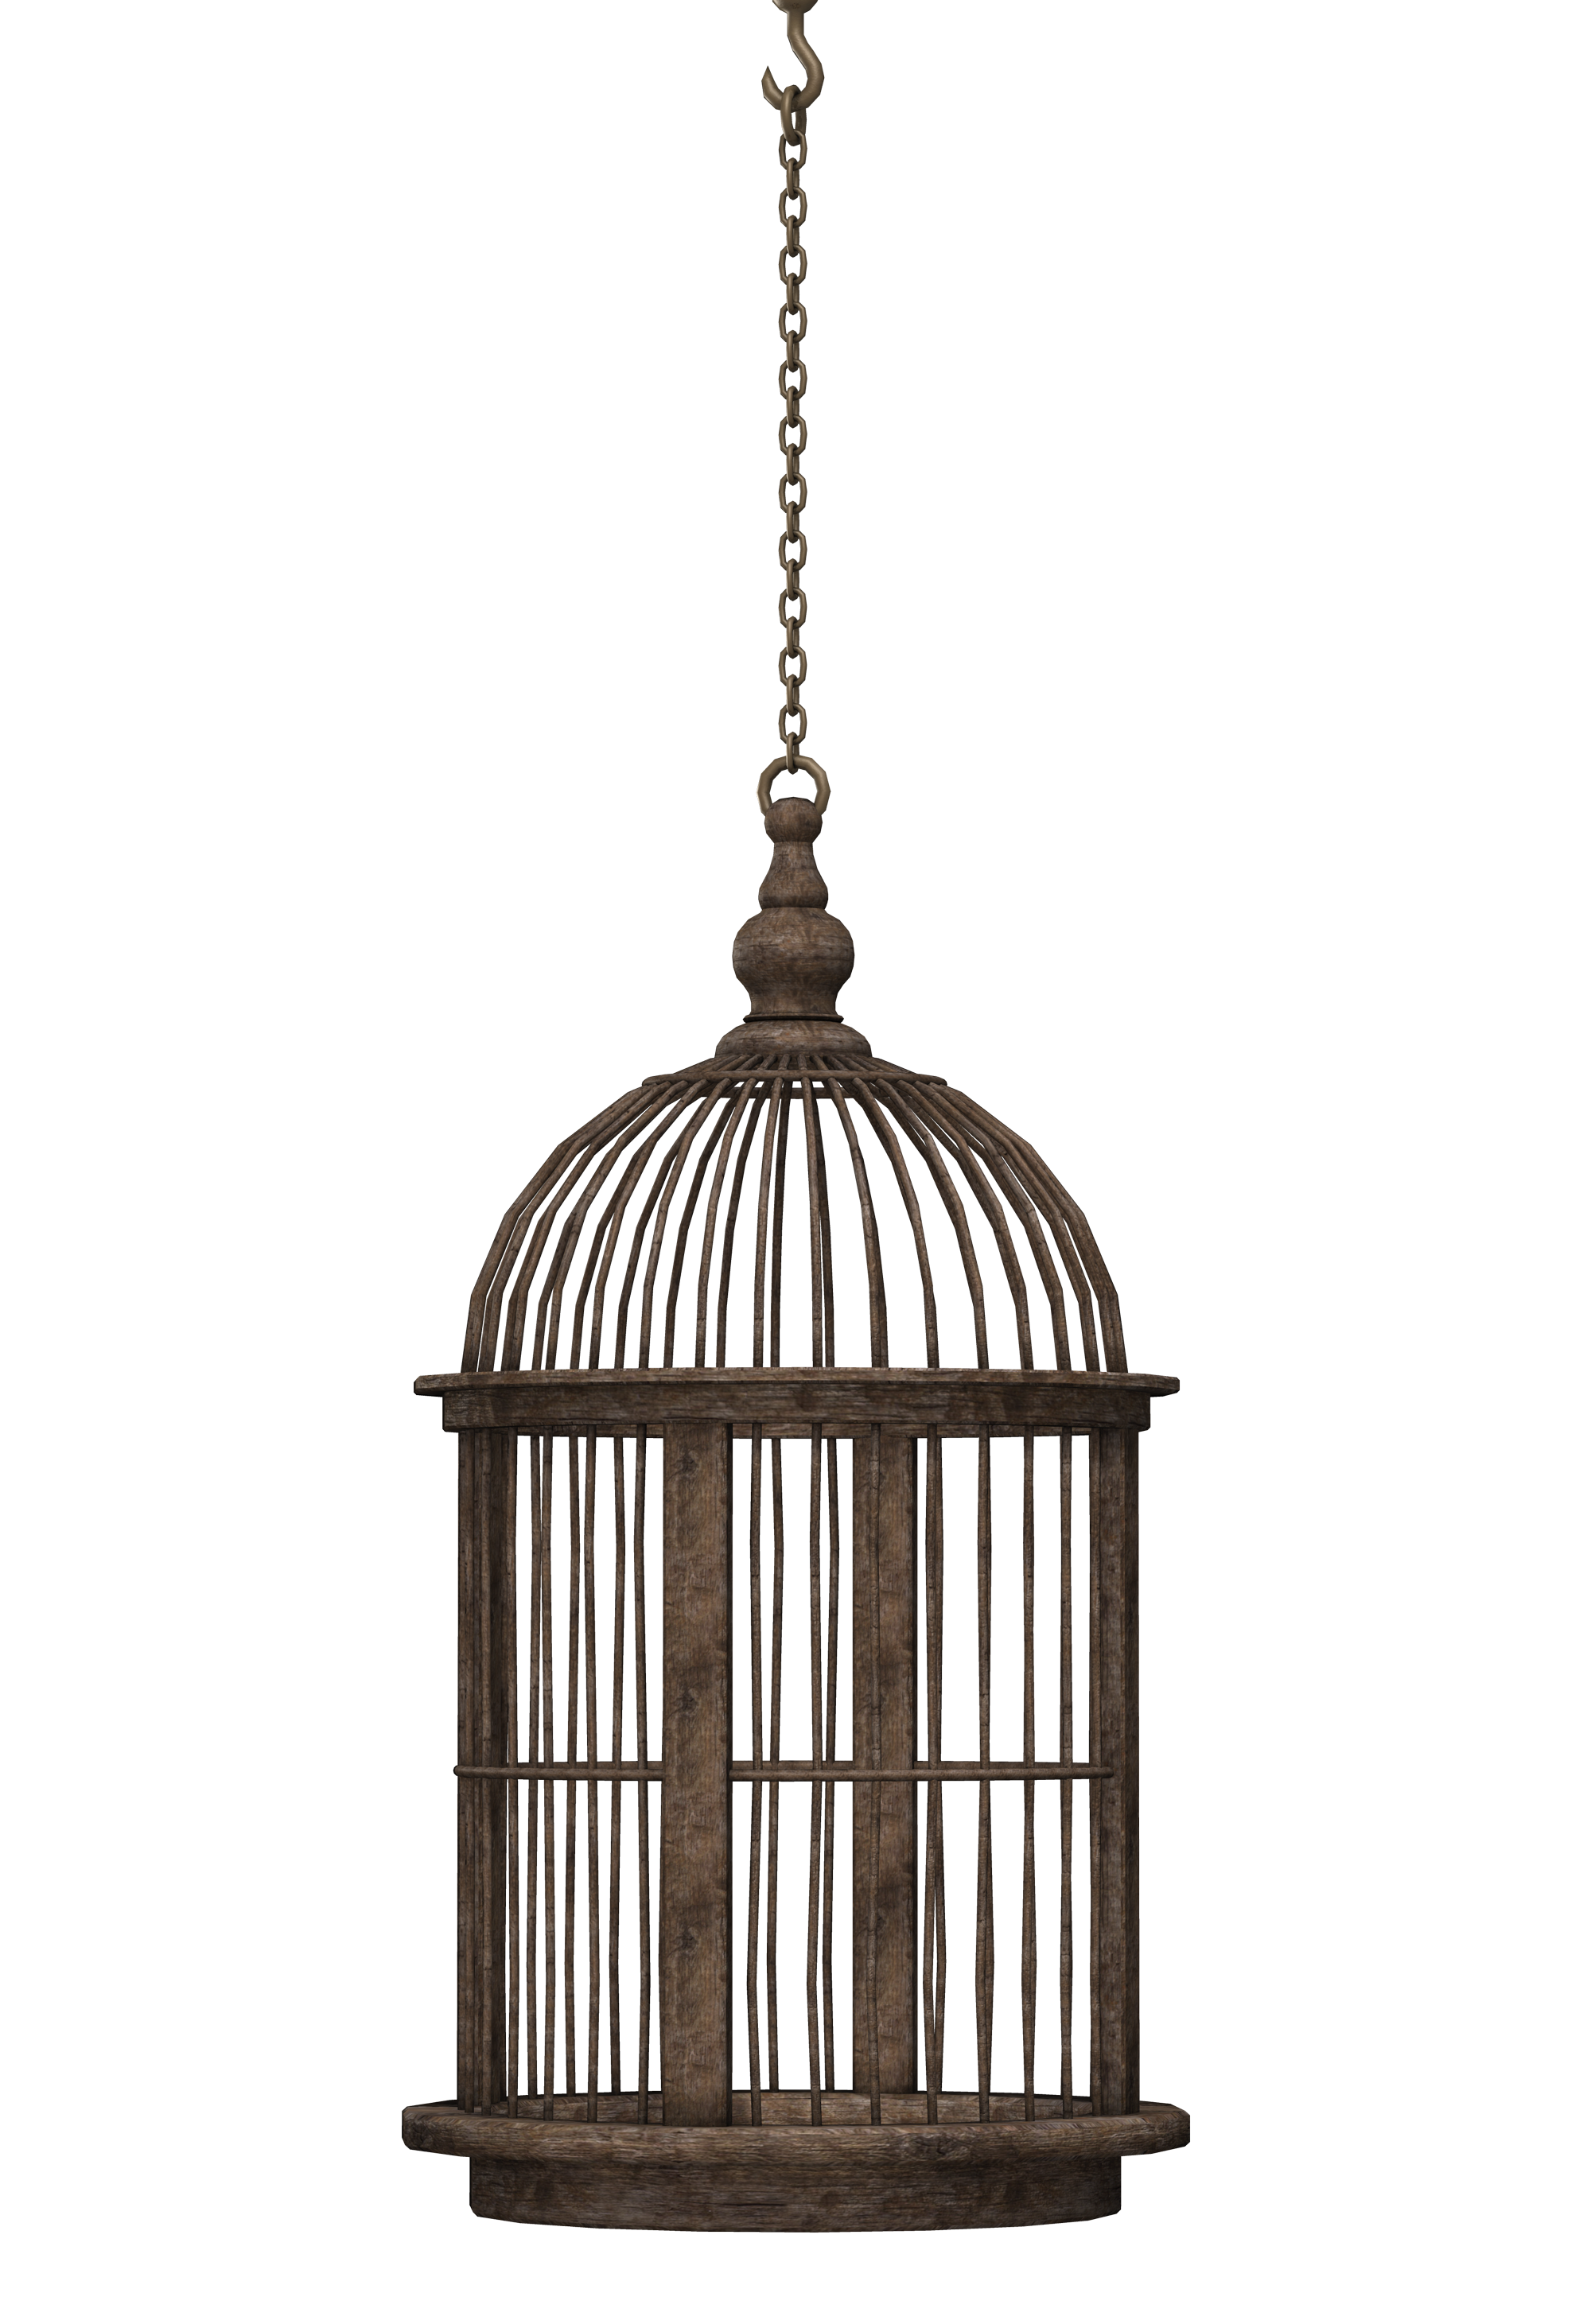 Cage clipart steel cage. Bird png images free